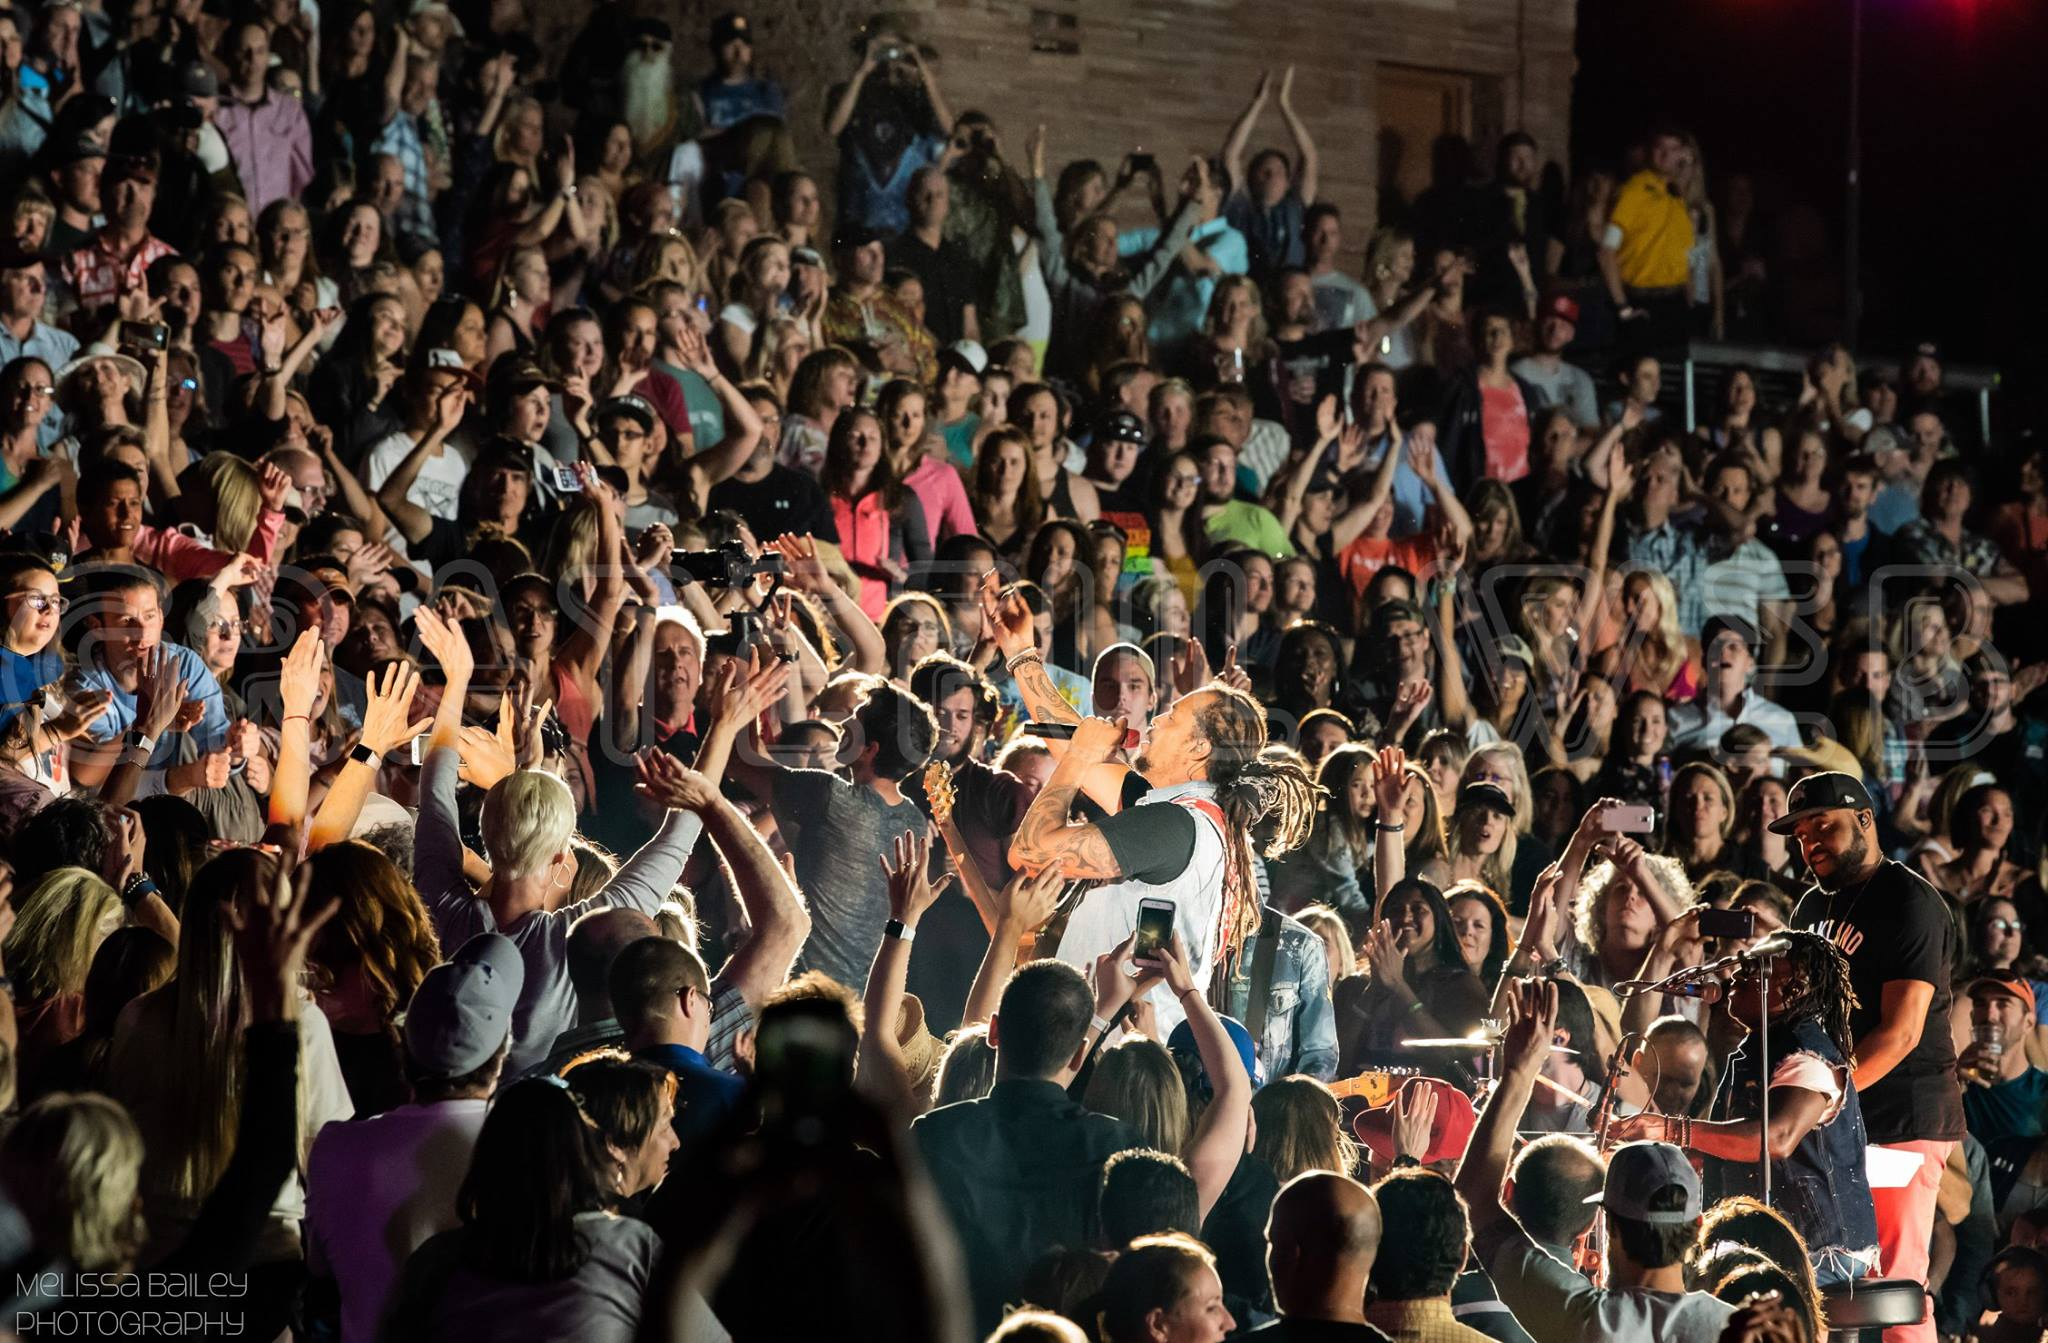 Michael Franti to play Red Rocks on June 7th